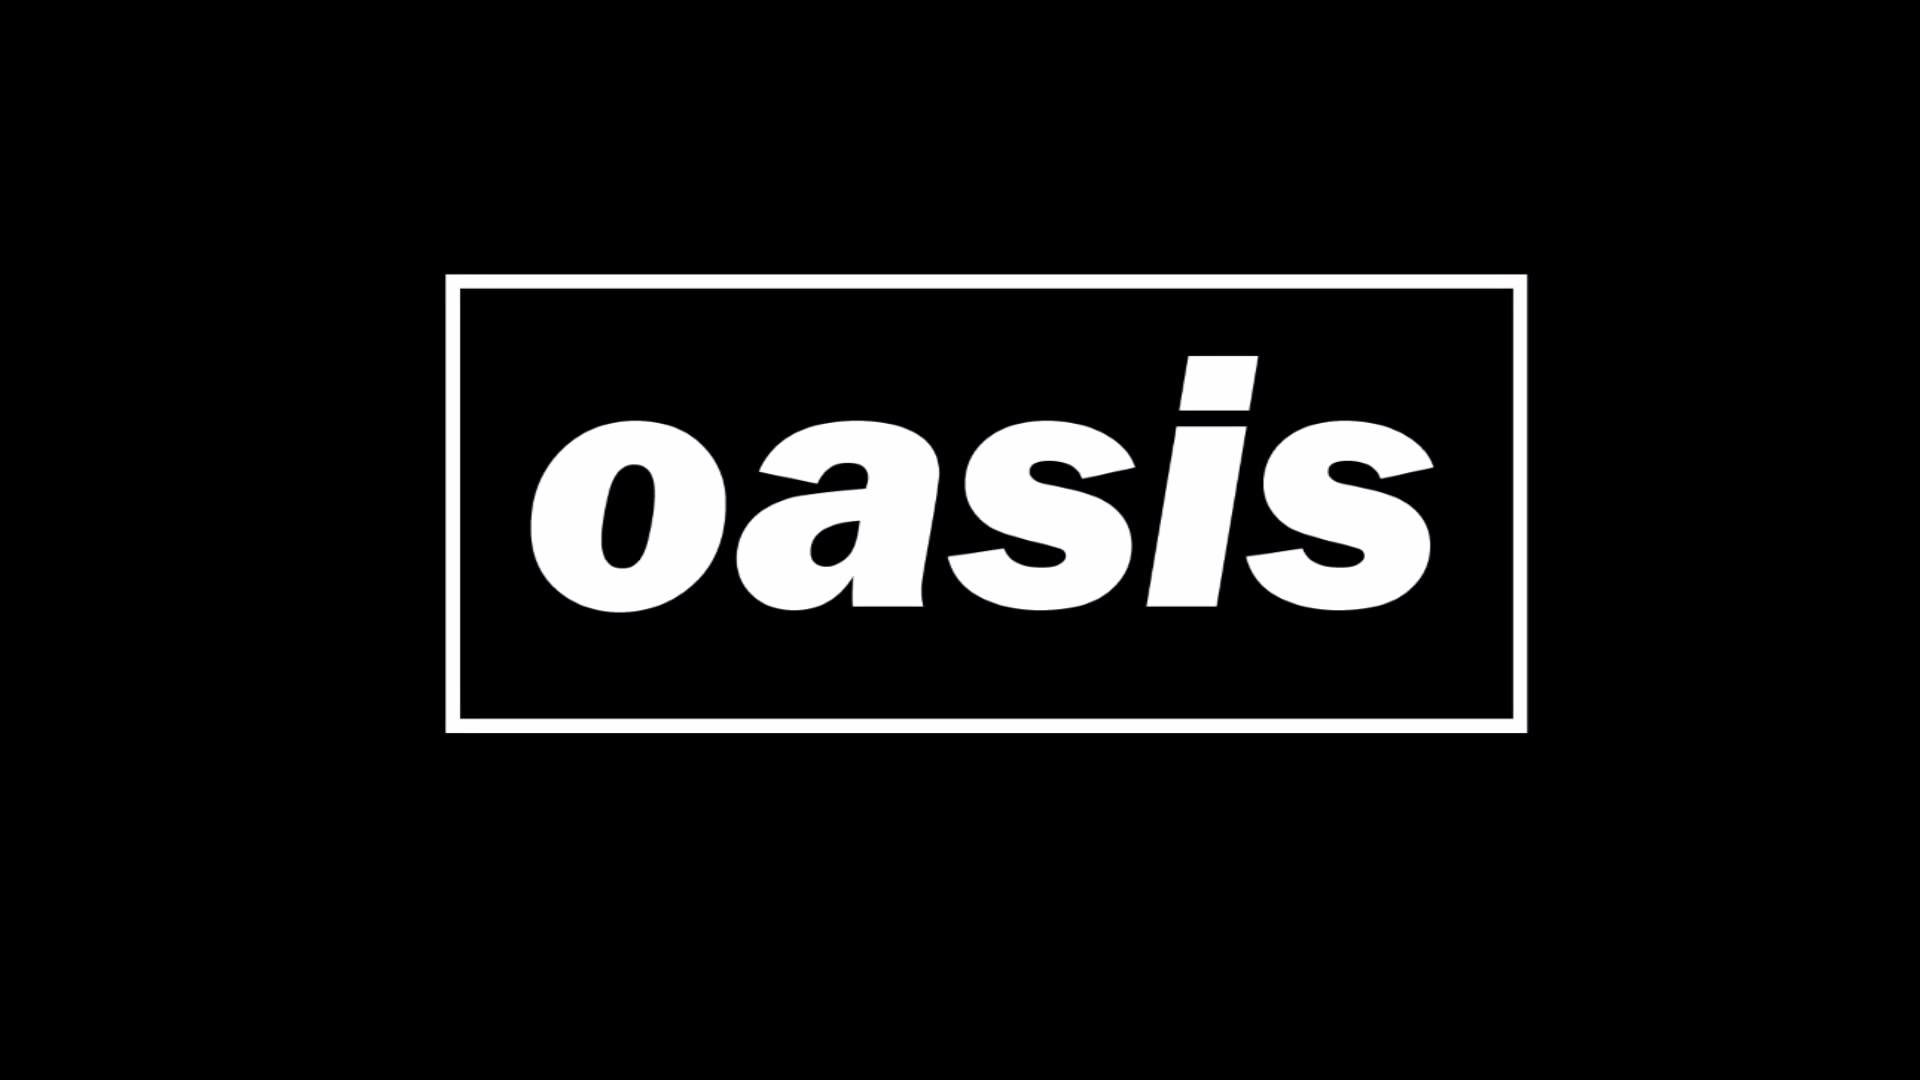 Oasis Wallpaper (59+ images) Oasis Band Logo